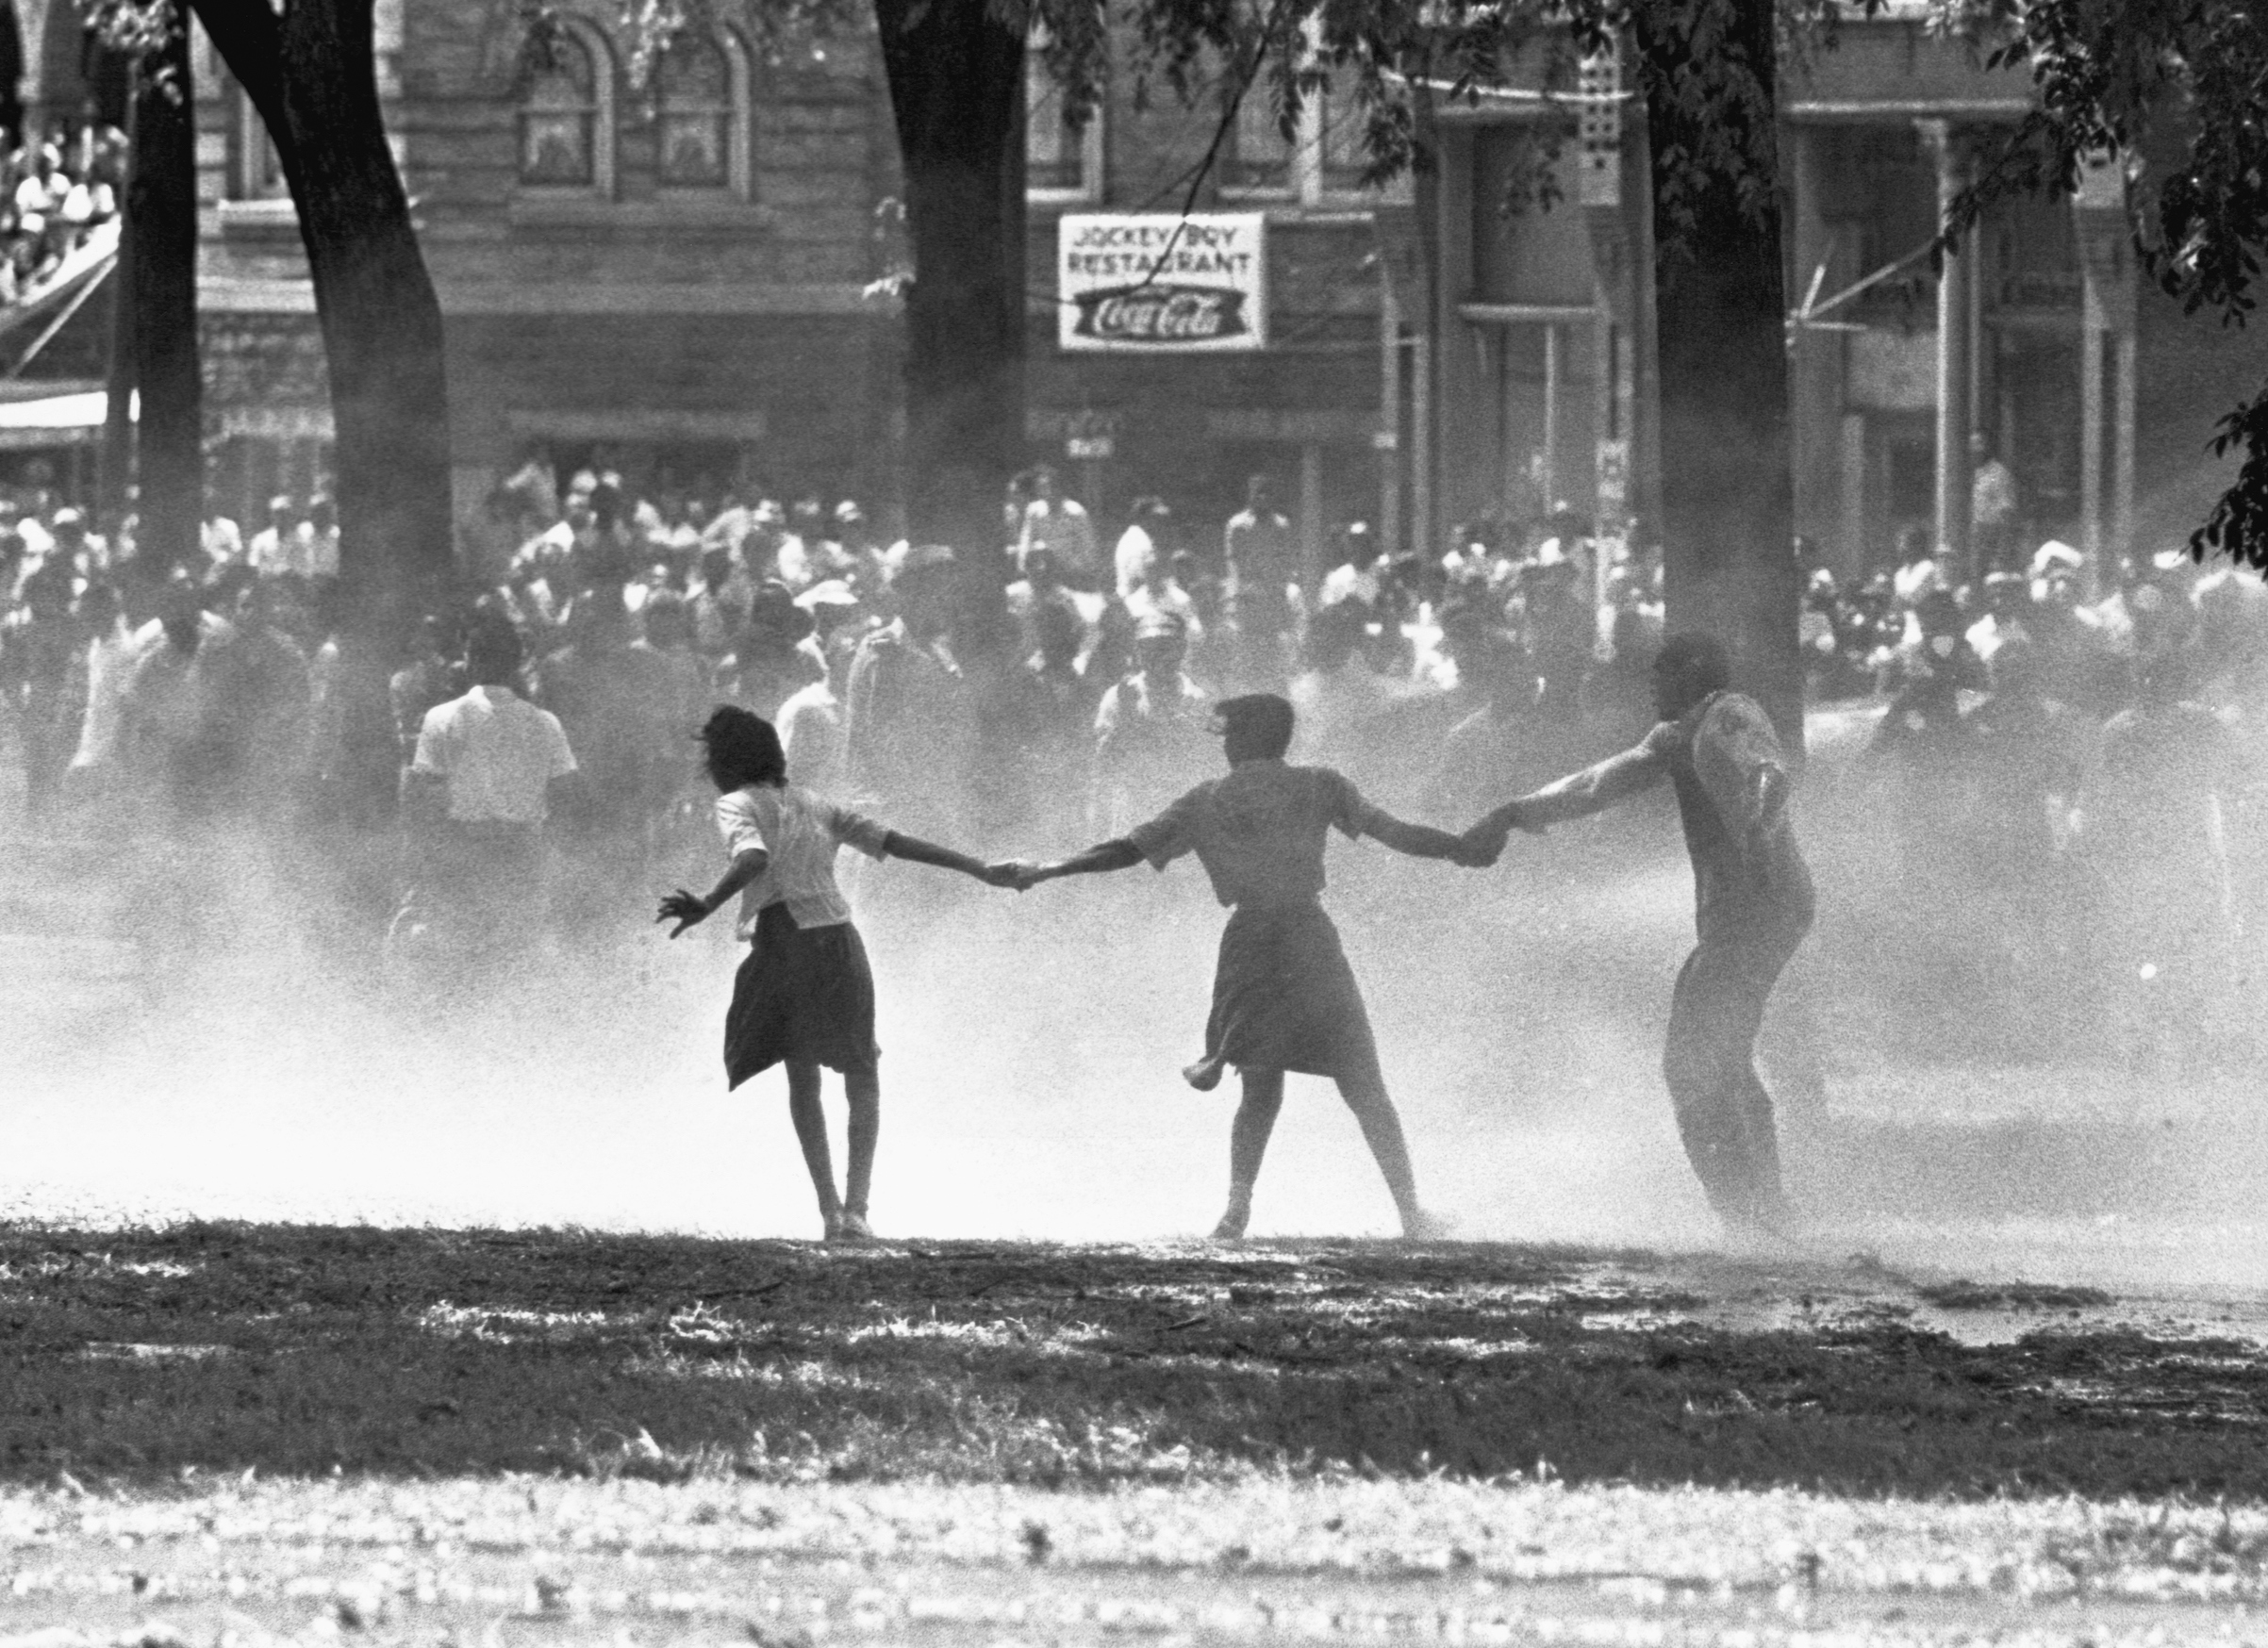 Three demonstrators join hands to build strength against the force of water sprayed by riot police in Birmingham, Alabama, during a protest of segregation practices in May of 1963.